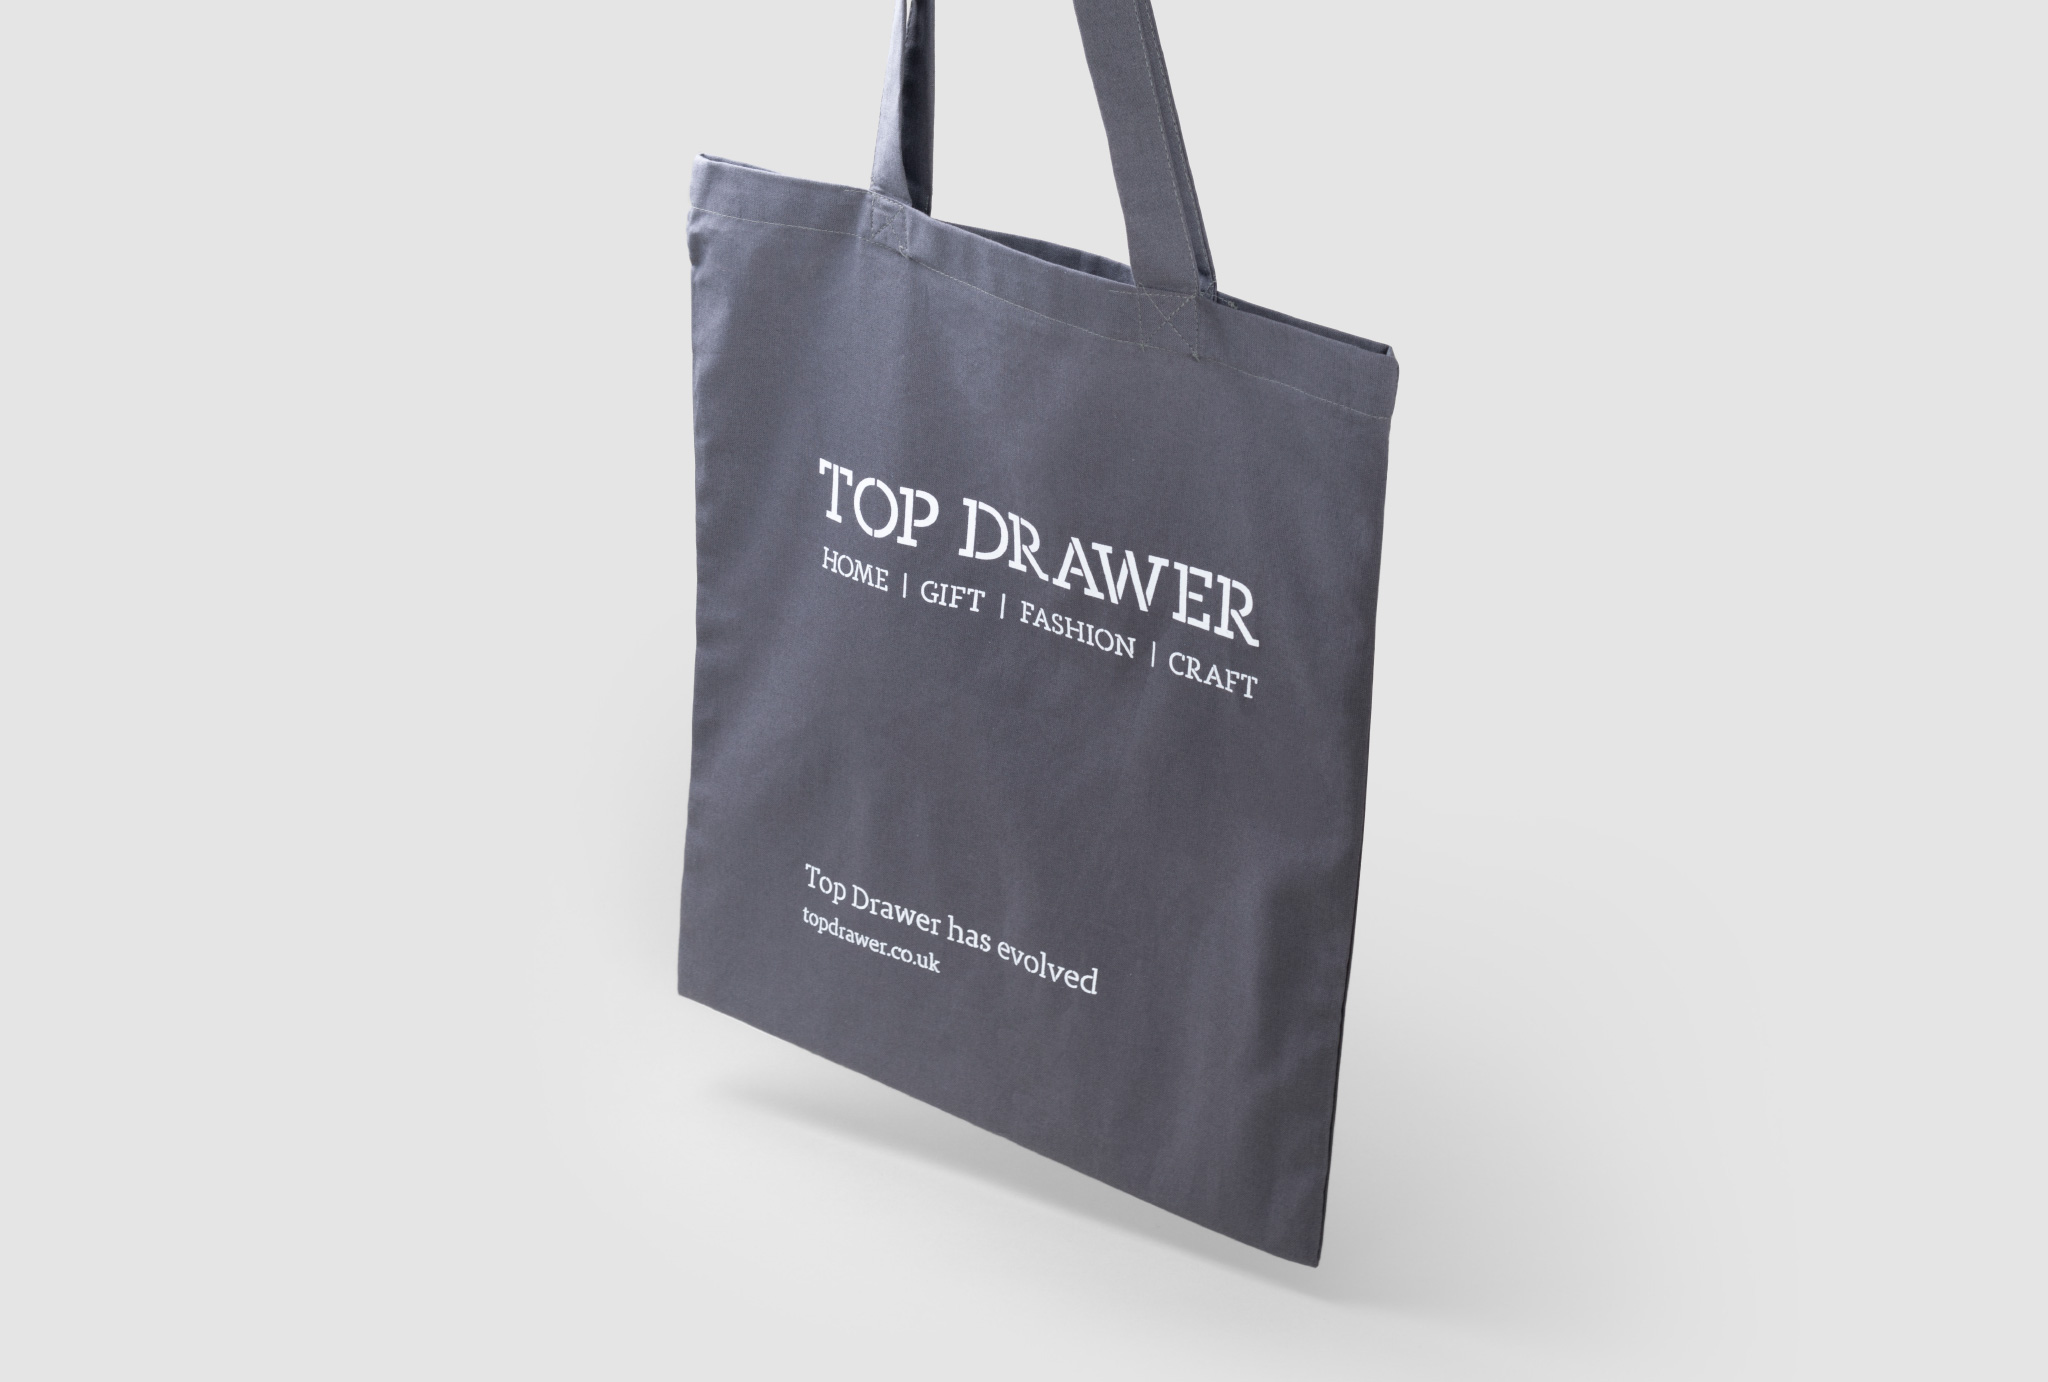 dark grey bag that says 'TOP DRAWER' 'HOME / GIFT / FASHION / CRAFT' in white